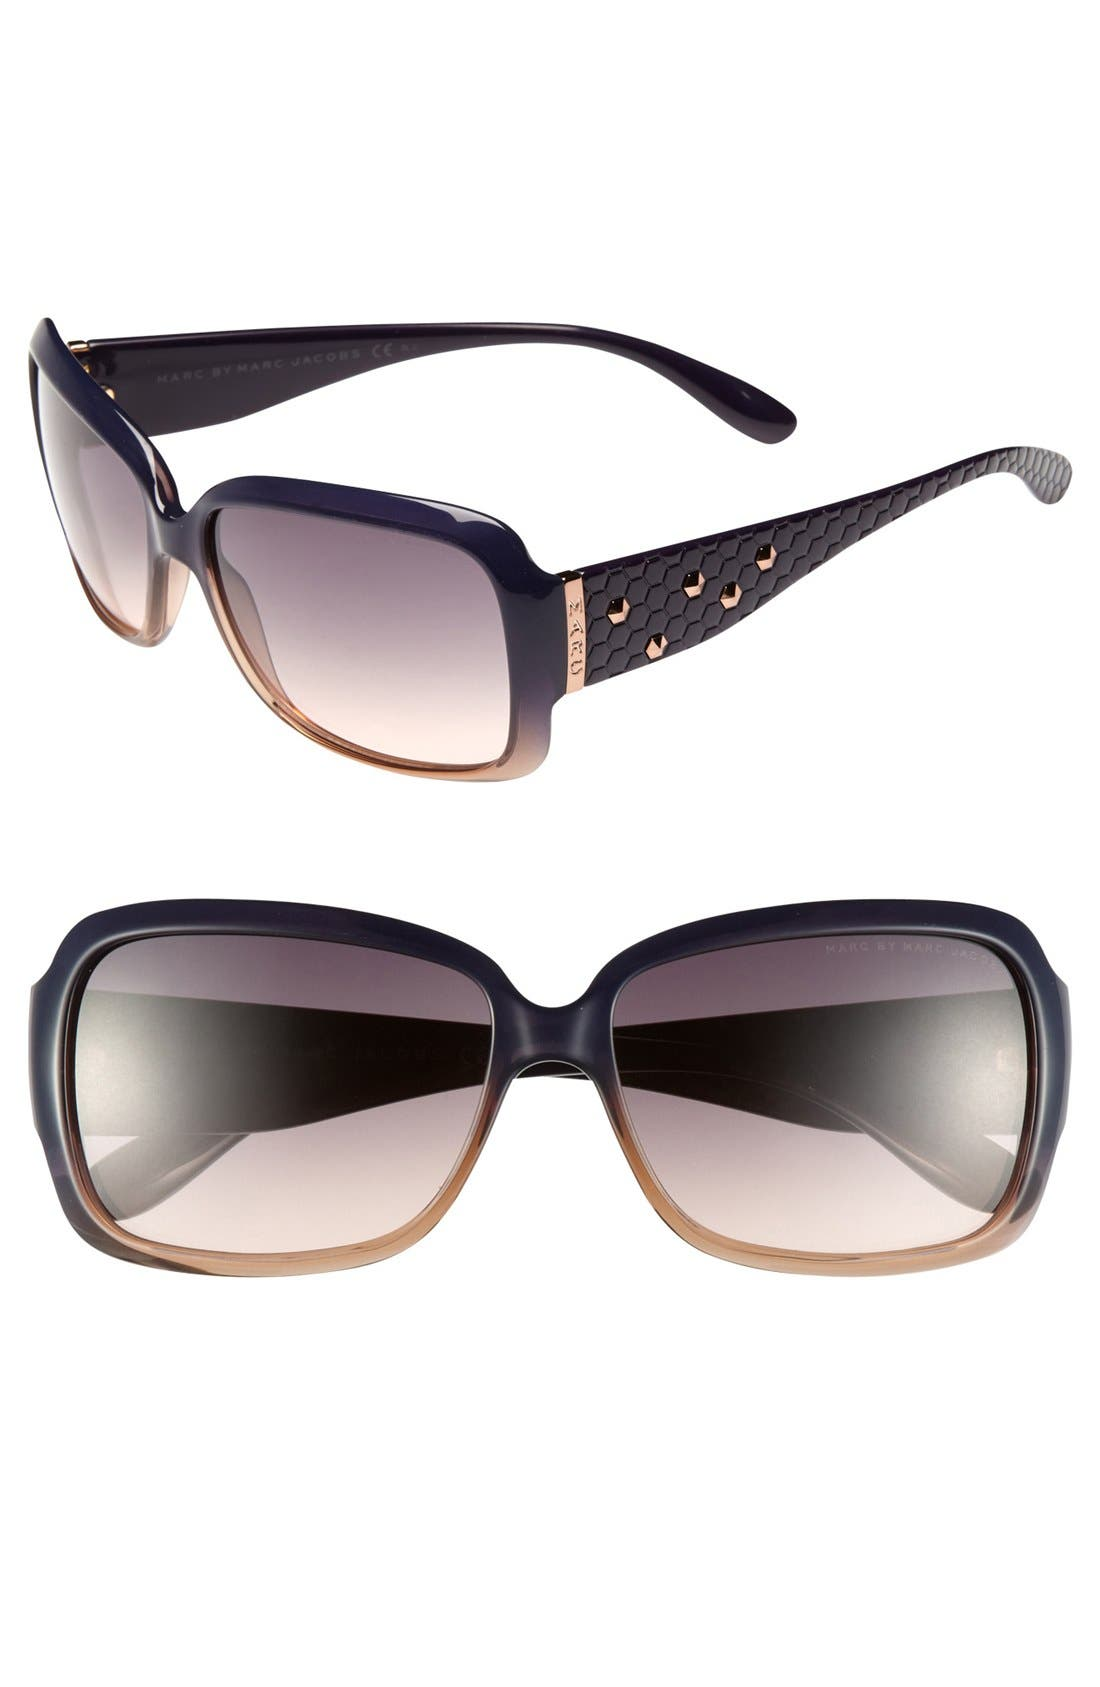 Main Image - MARC BY MARC JACOBS Studded 58mm Square Sunglasses